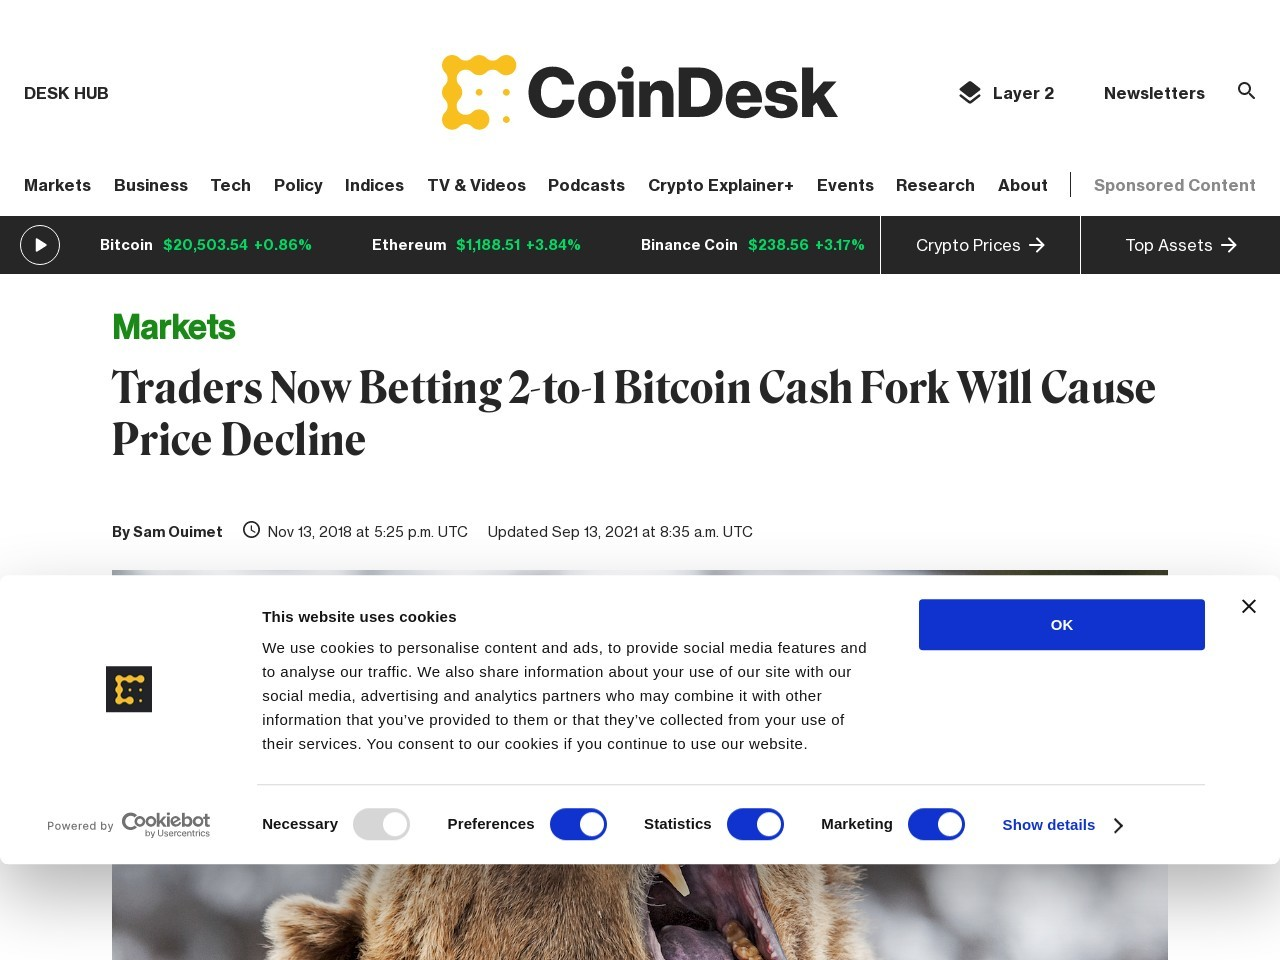 Traders Now Betting 2-to-1 Bitcoin Cash Fork Will Cause Price Decline